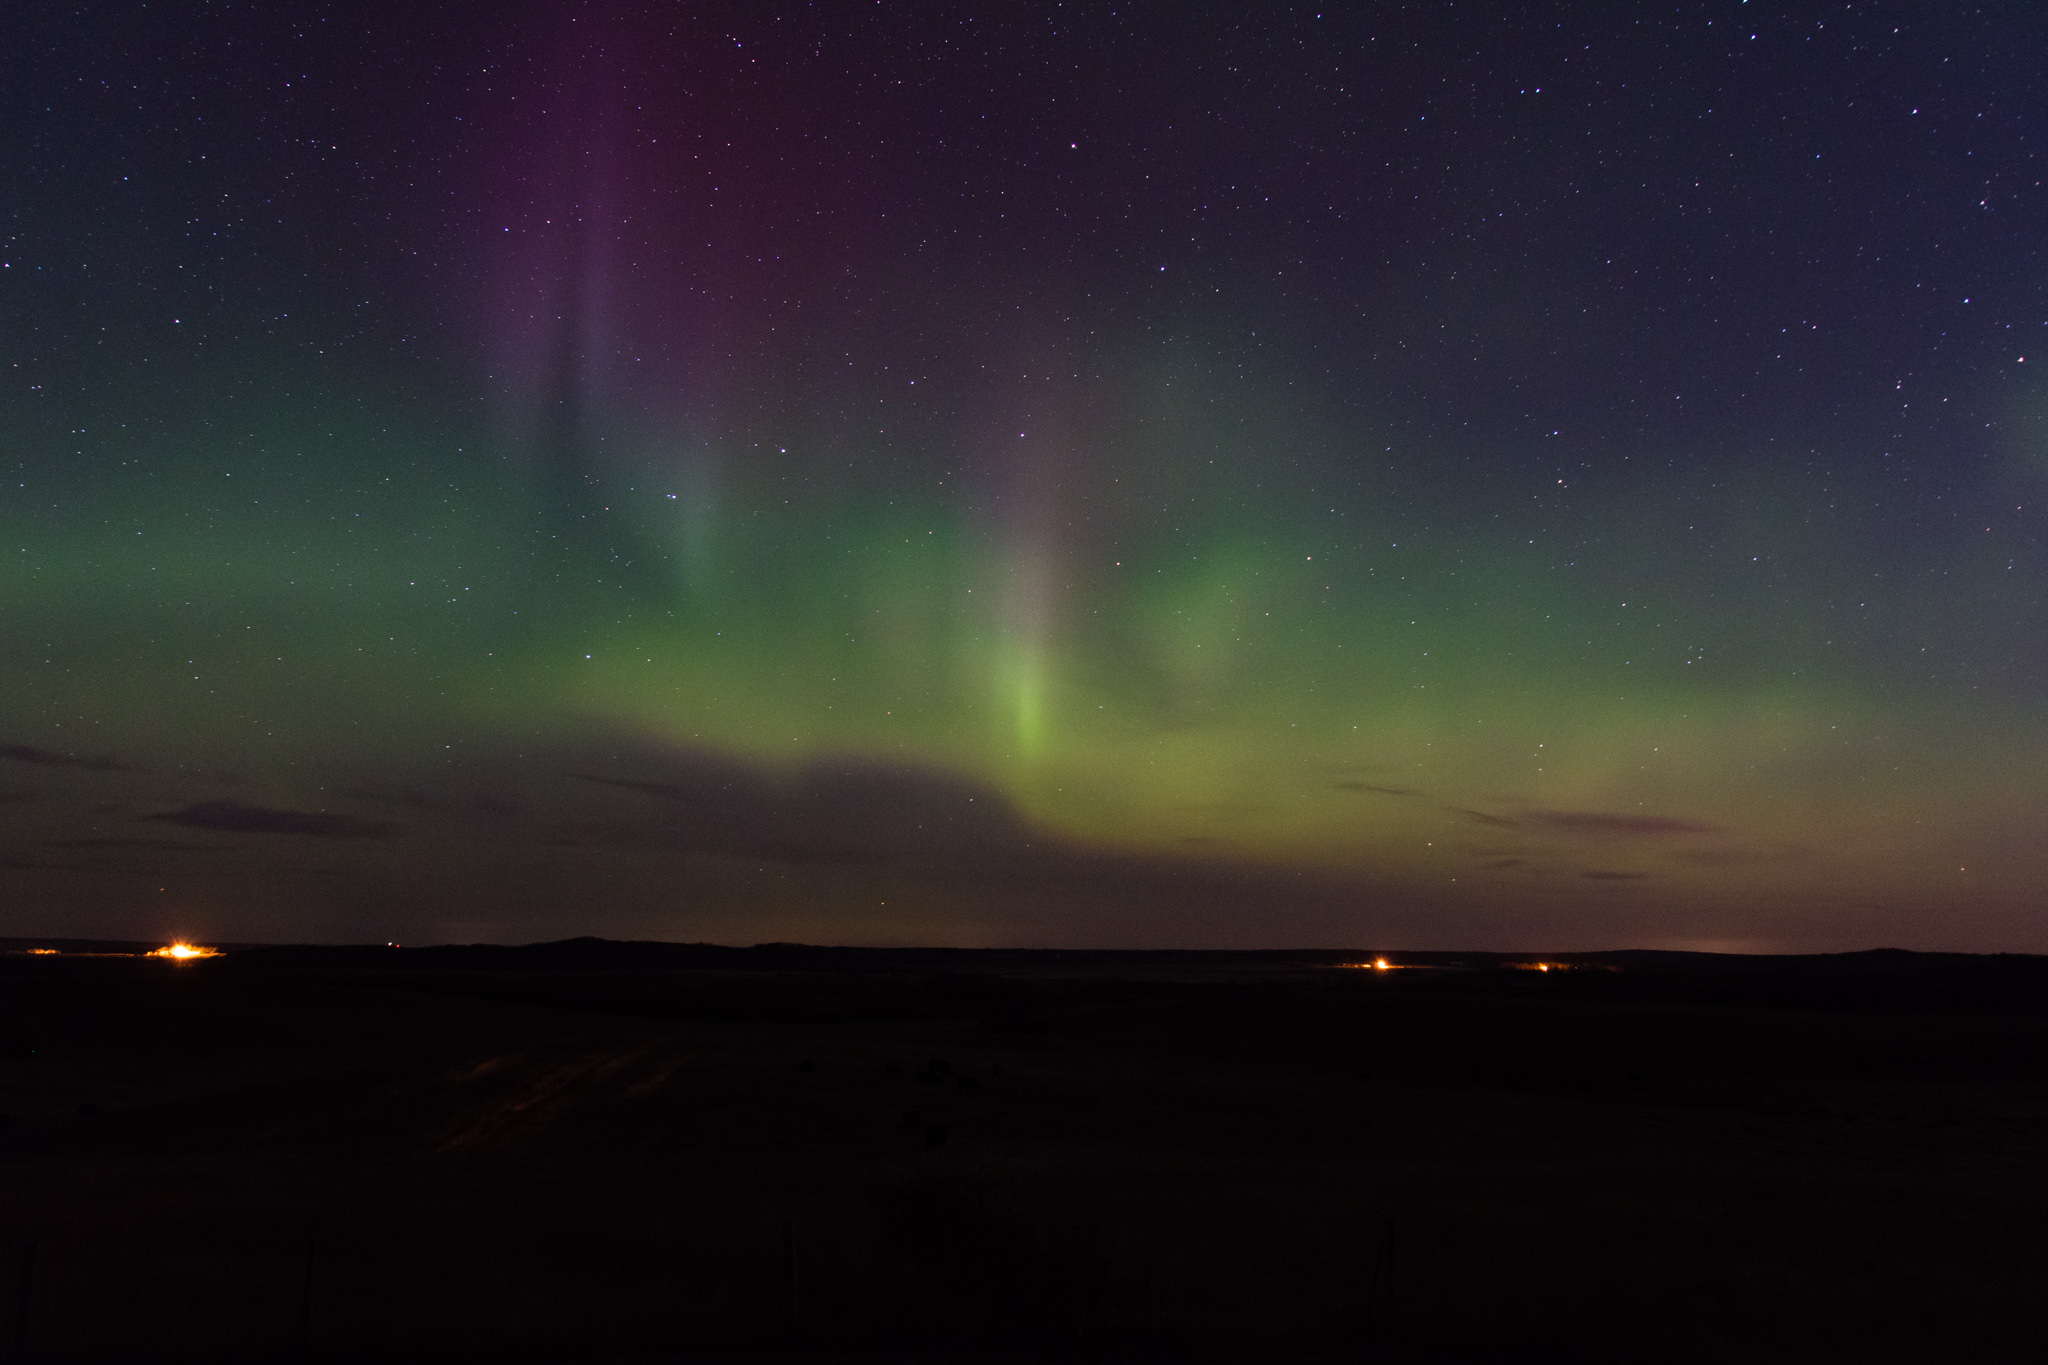 Even here, you can see the northern light.